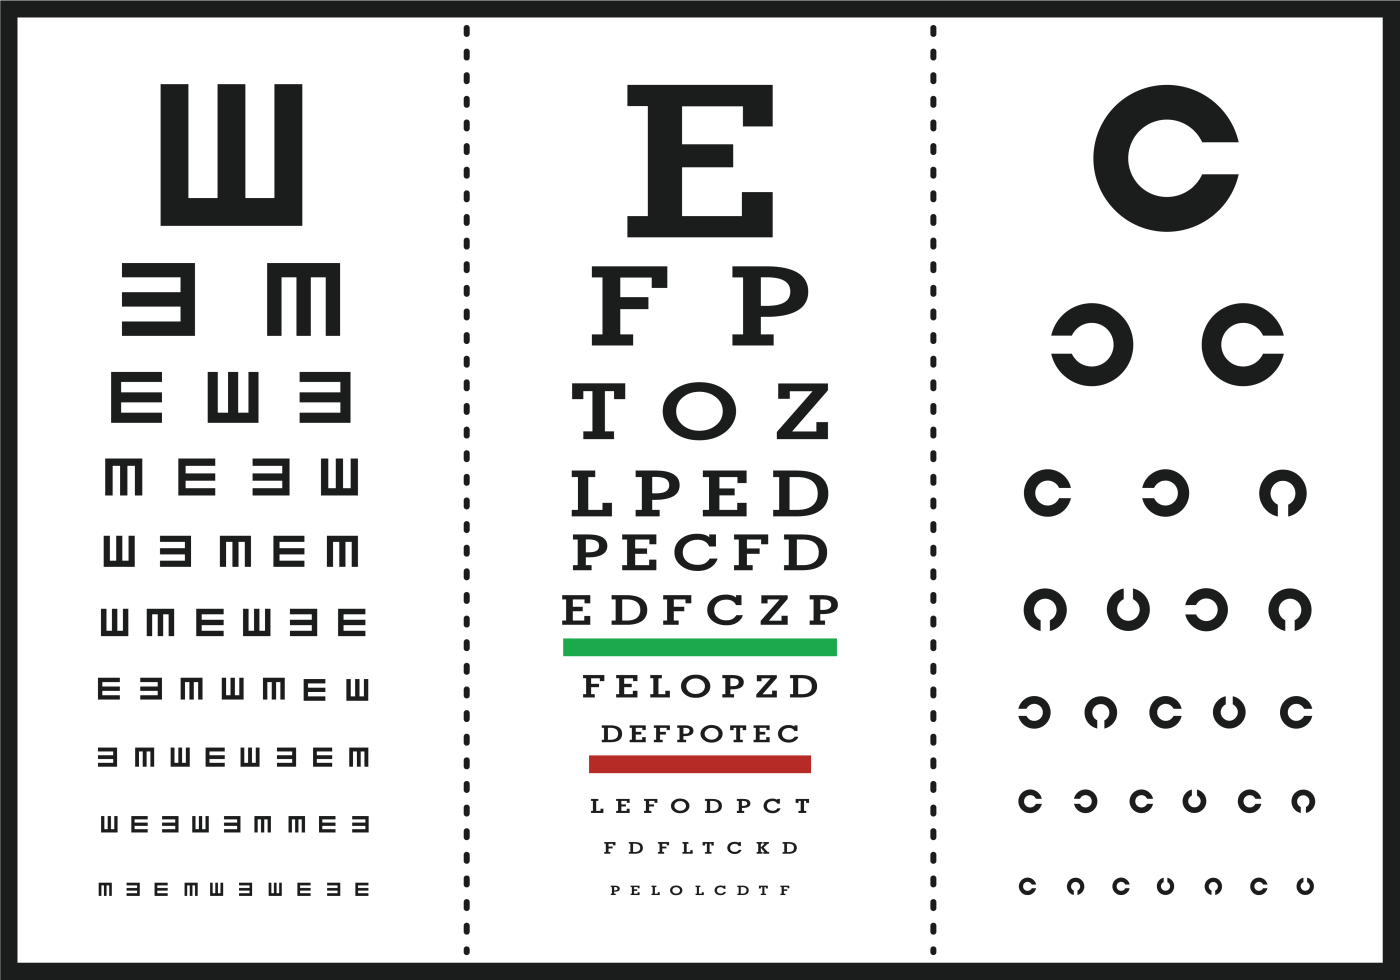 Eye test letter poster vectors download free vector art stock eye test letter poster vectors download free vector art stock graphics images nvjuhfo Choice Image